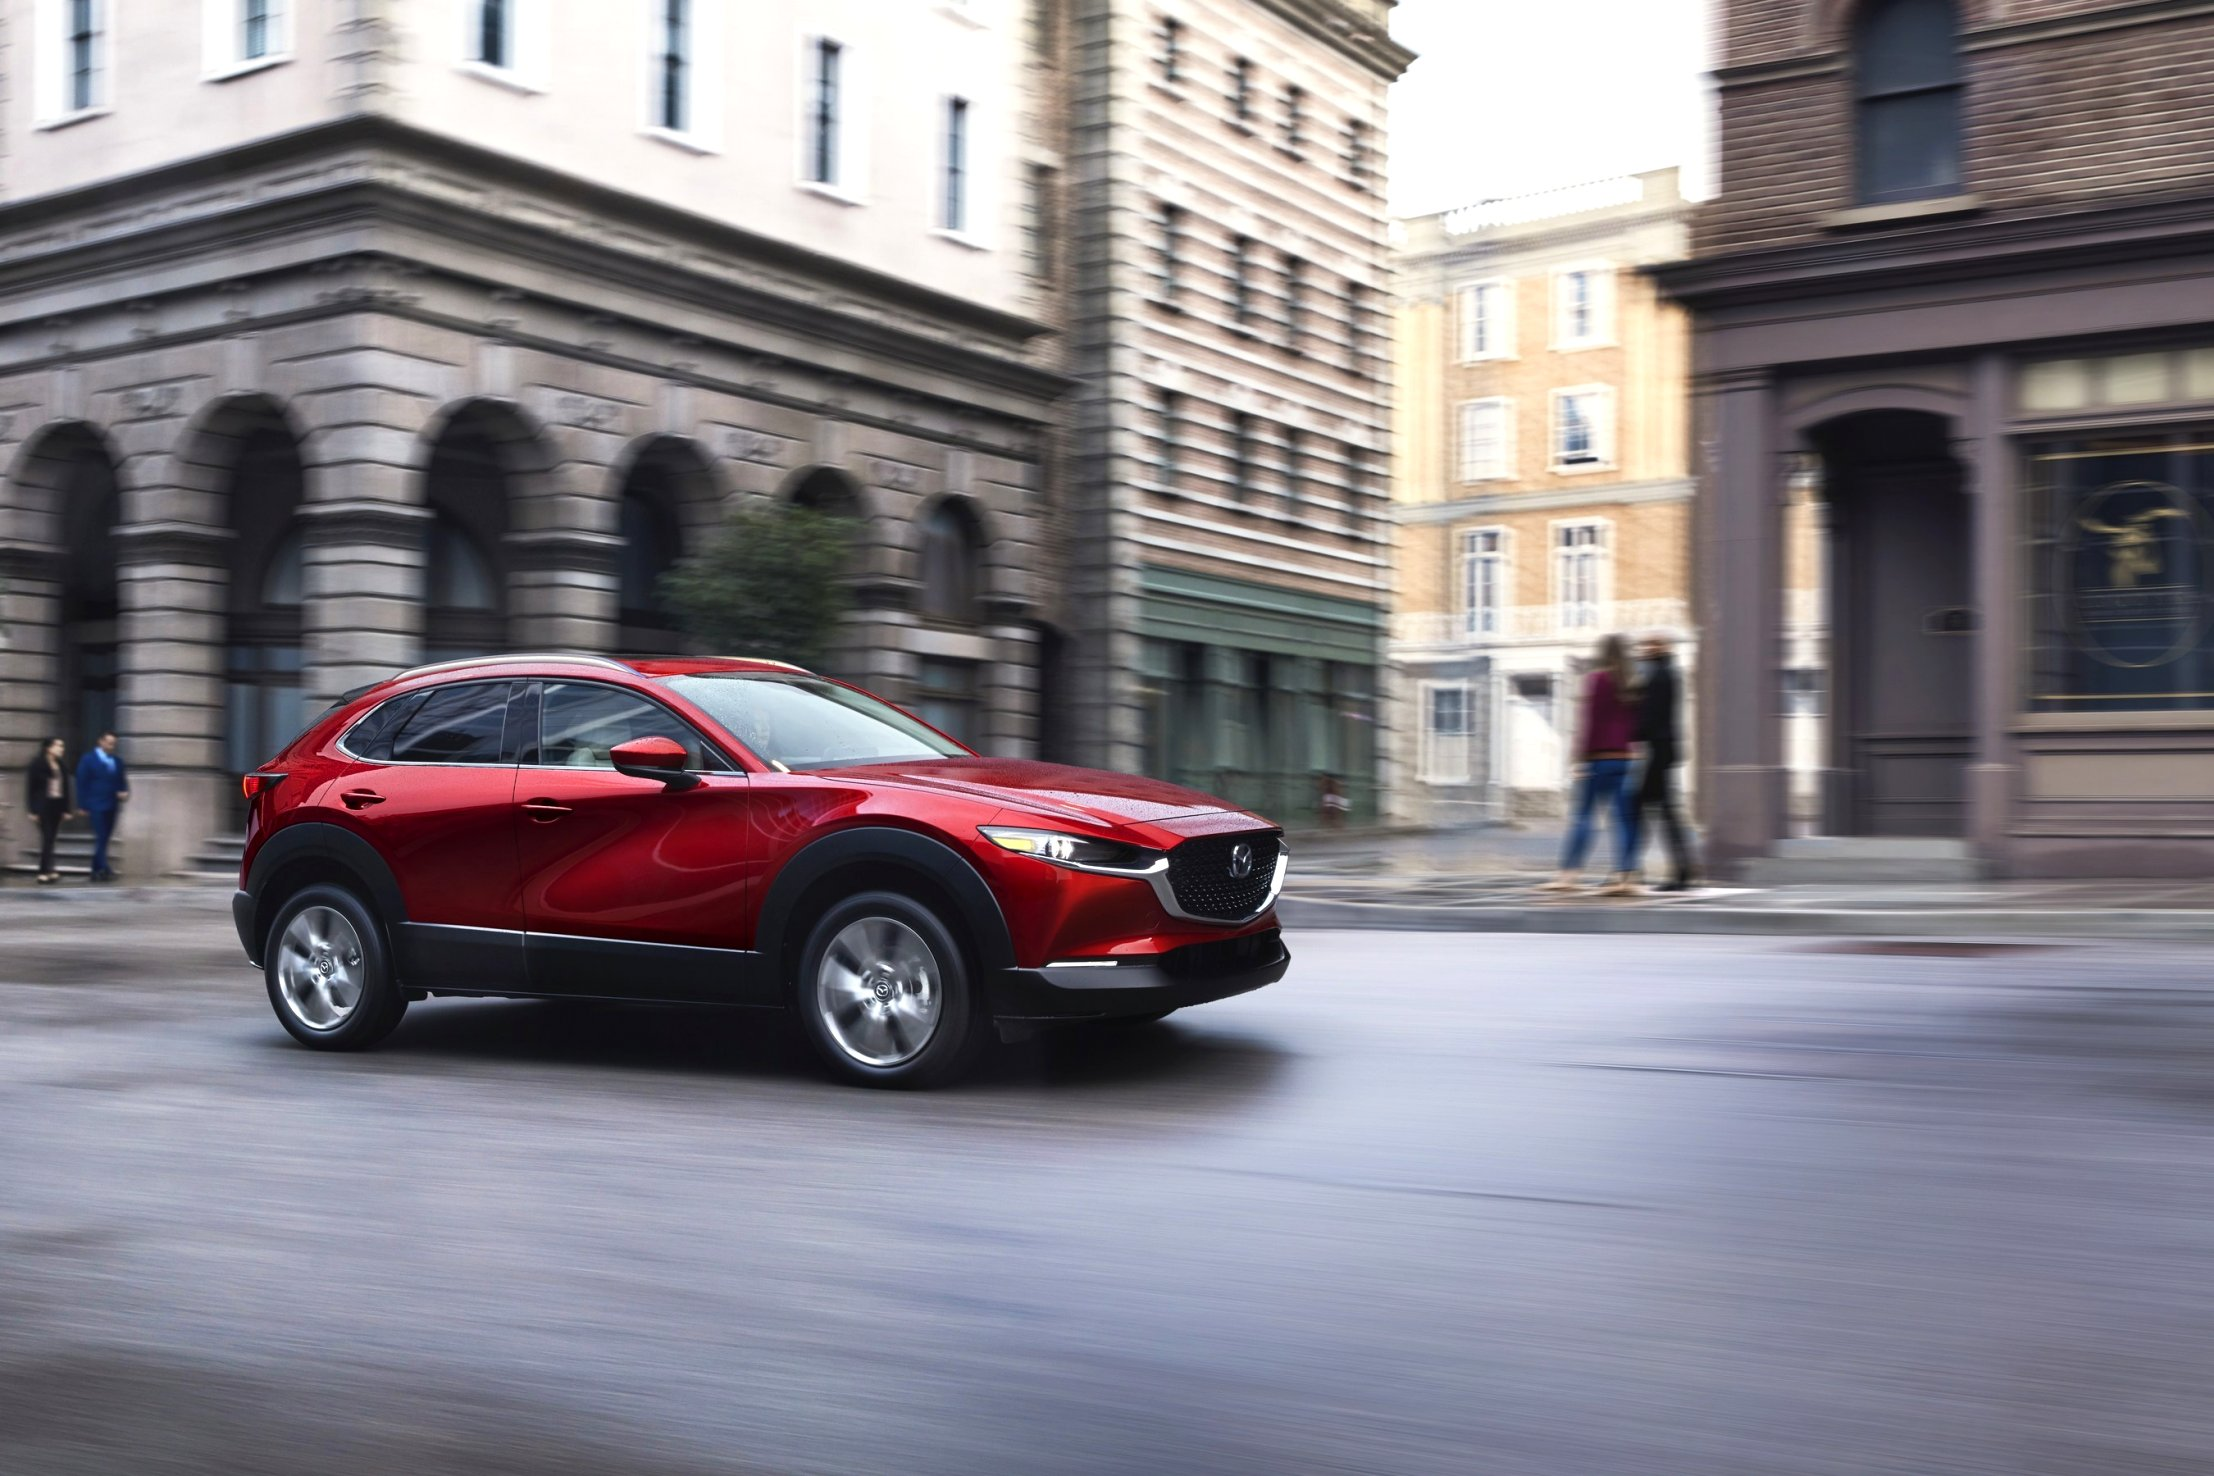 2020 mazda vehicles Release Date and Concept